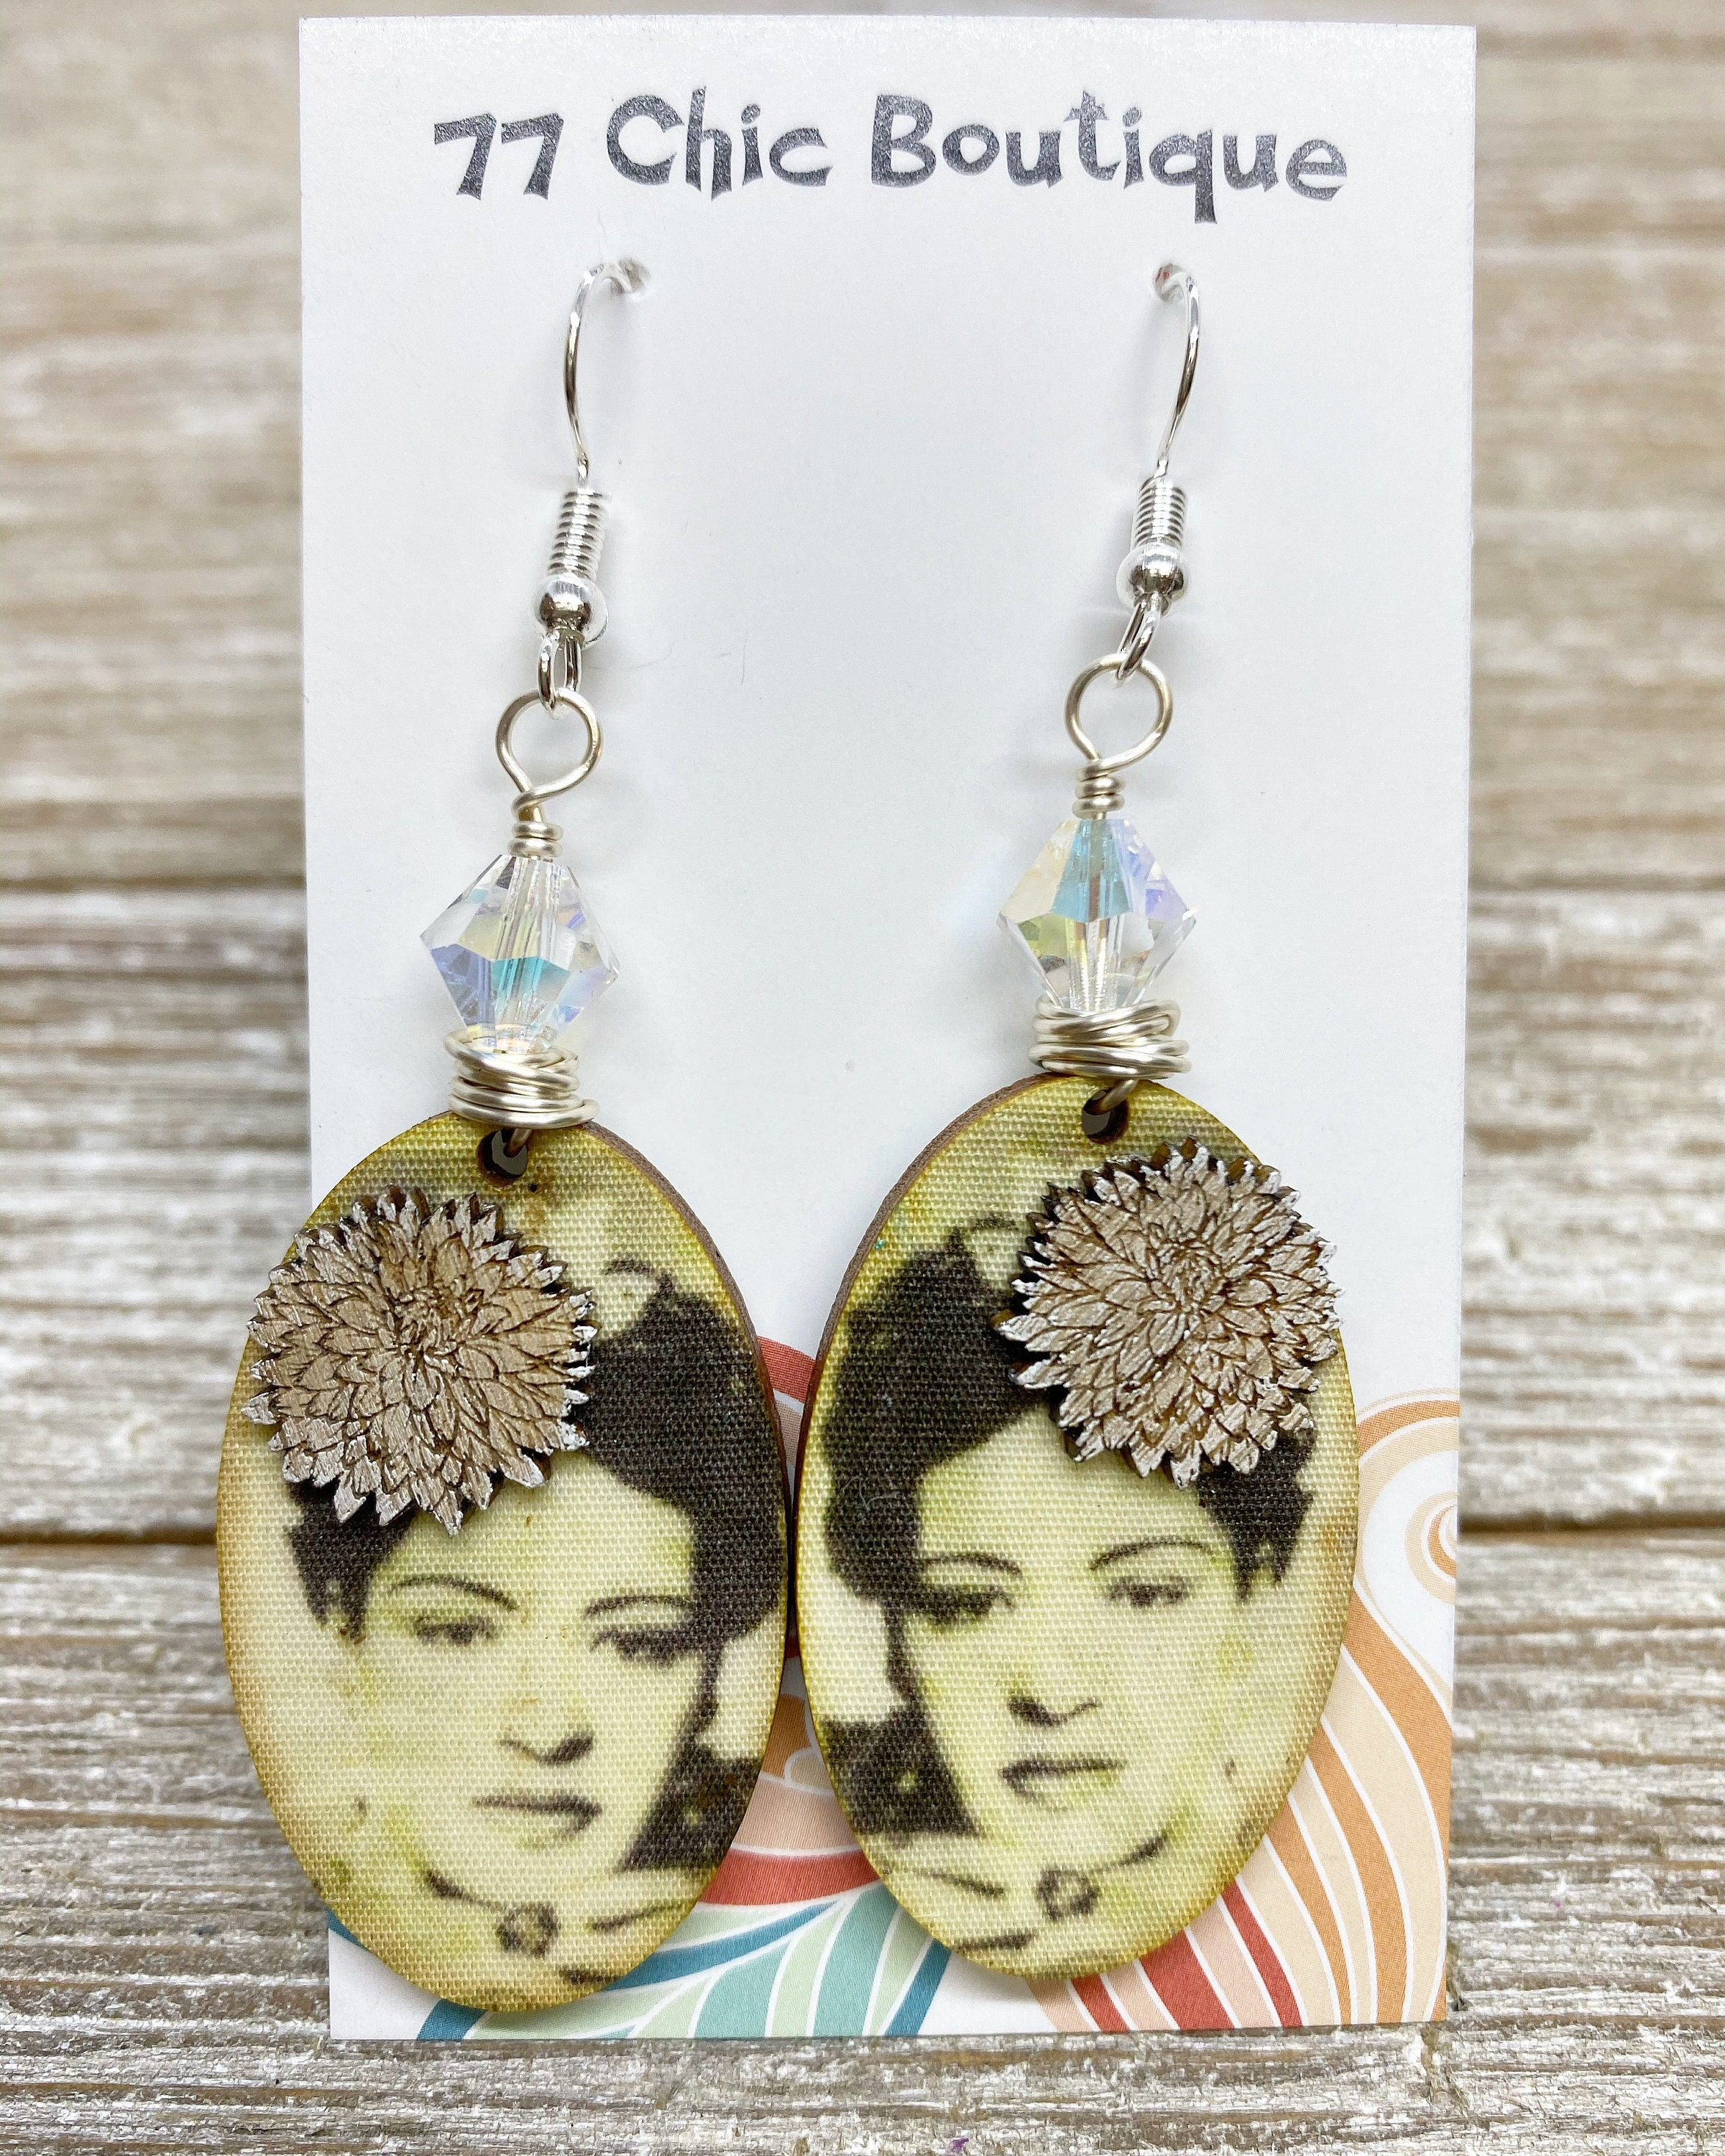 Super Lightweight Billie Holiday Earrings With Swarovski Crystal Accent